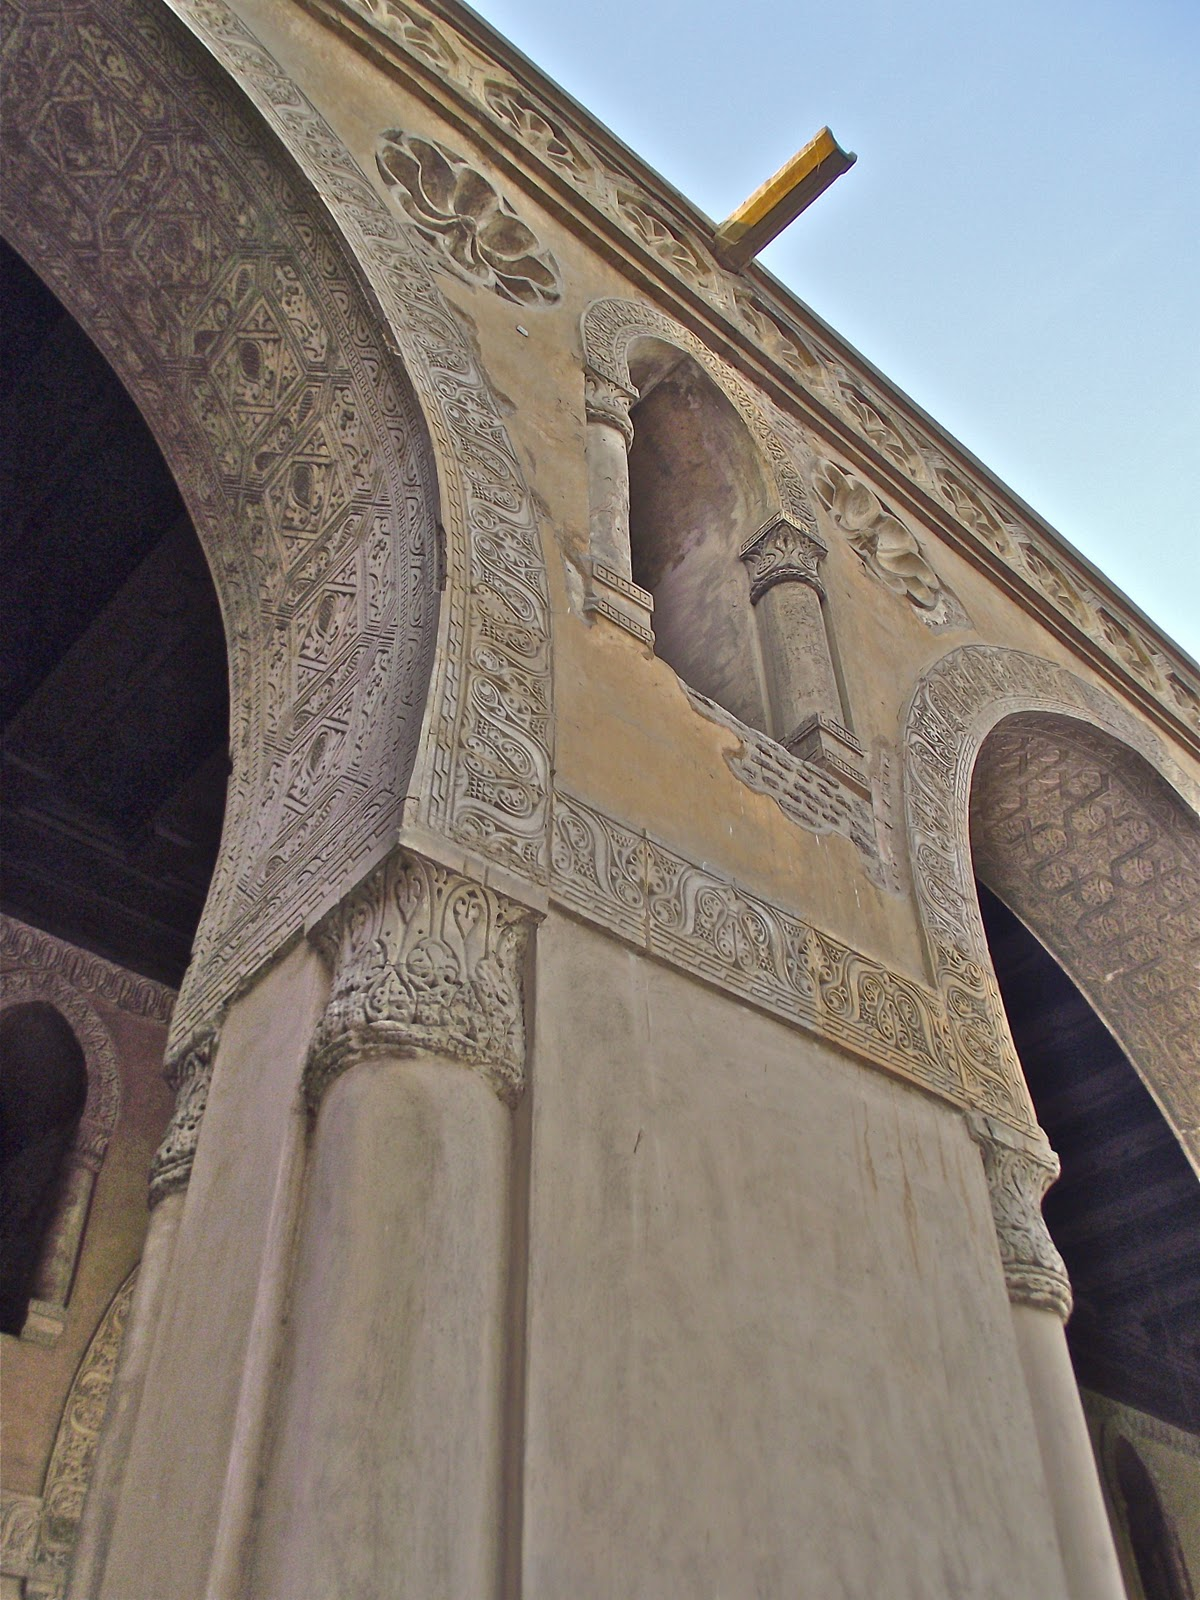 Hand-carved pillars in the Ibn Tulun Mosque.